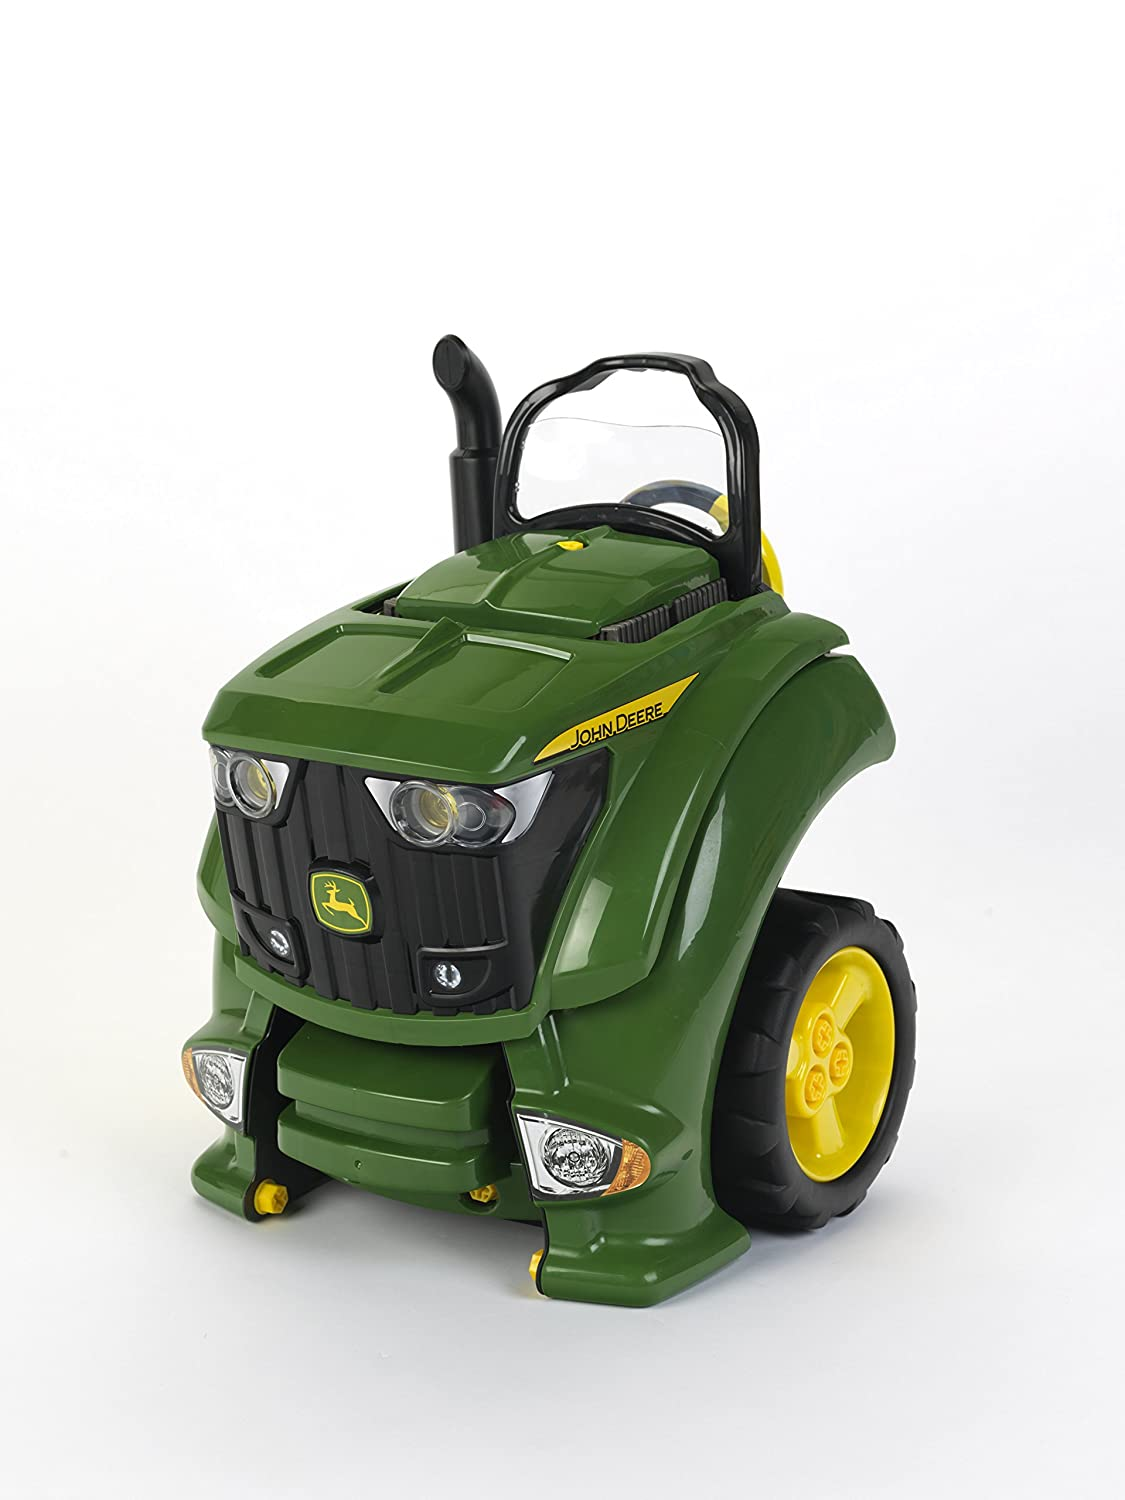 c40593a2080ee8 Amazon.com: John Deere Tractor Engine: Toys & Games